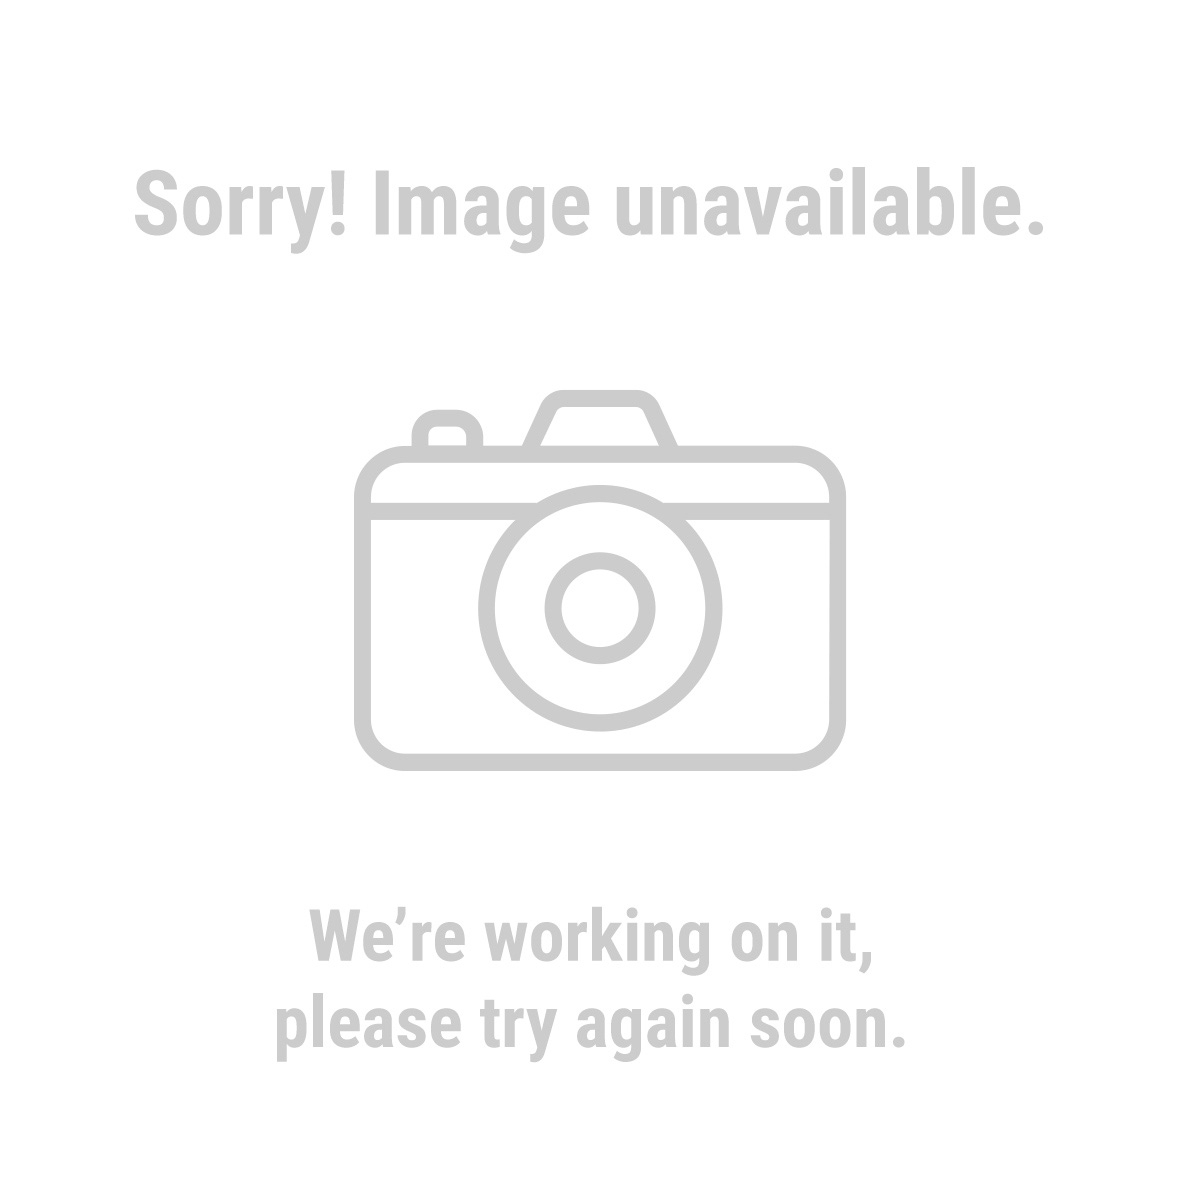 Central-Machinery 38142 16 Speed Heavy Duty Bench Drill Press